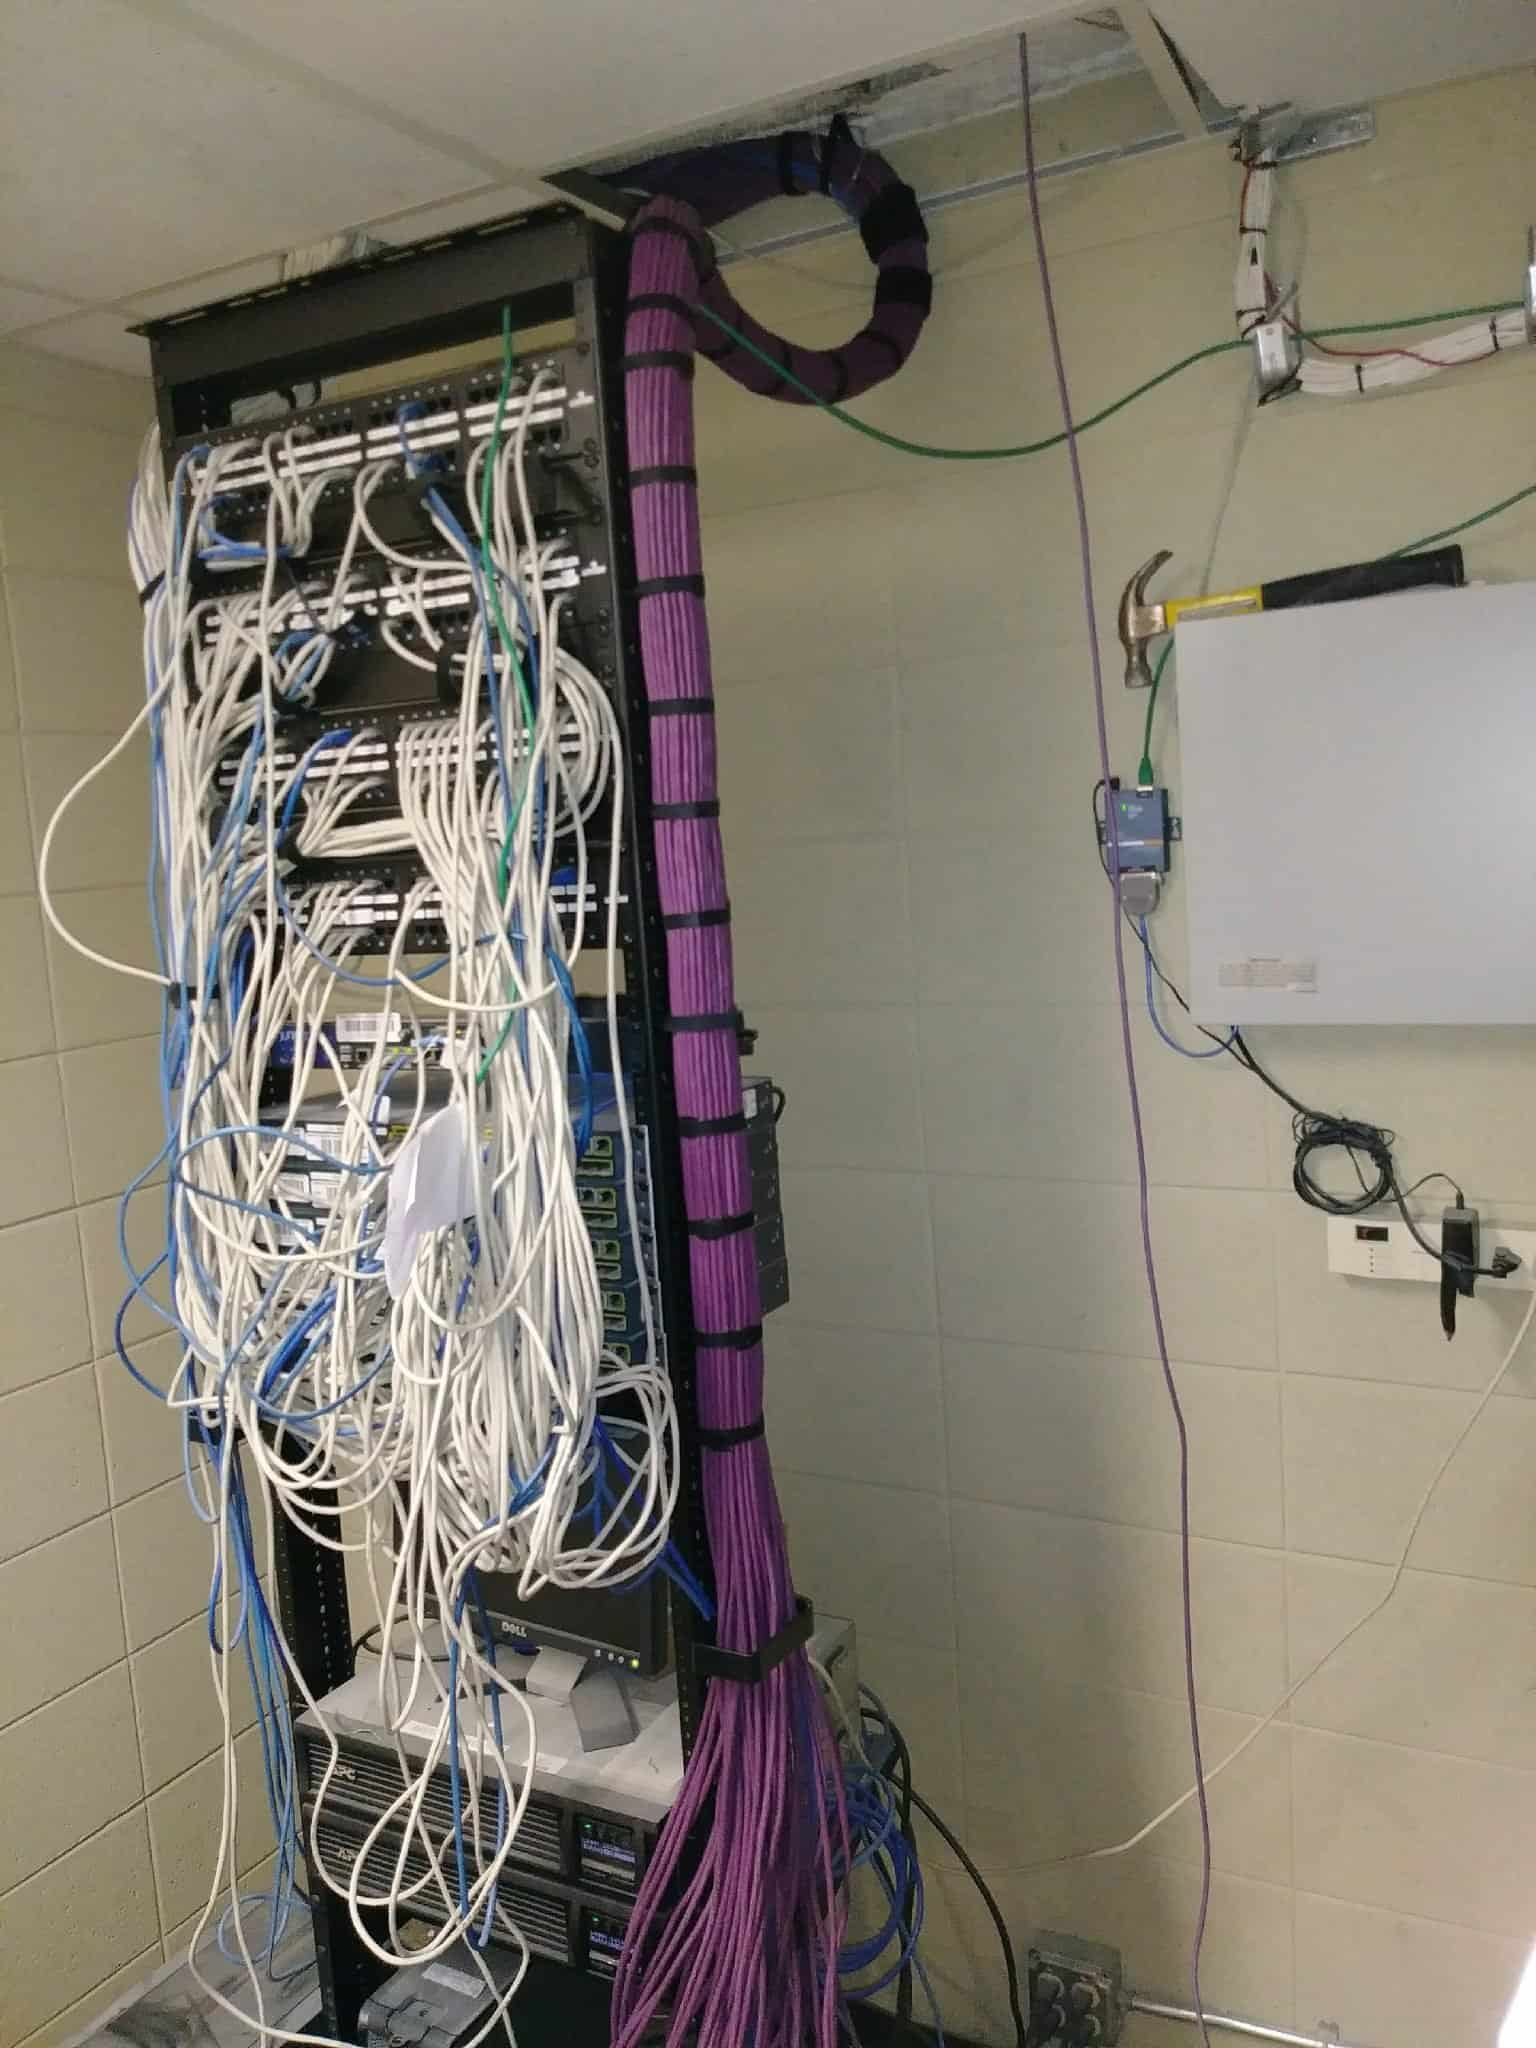 Structured Cabling & Network Services | SPARK Services MuskogeeSPARK Services